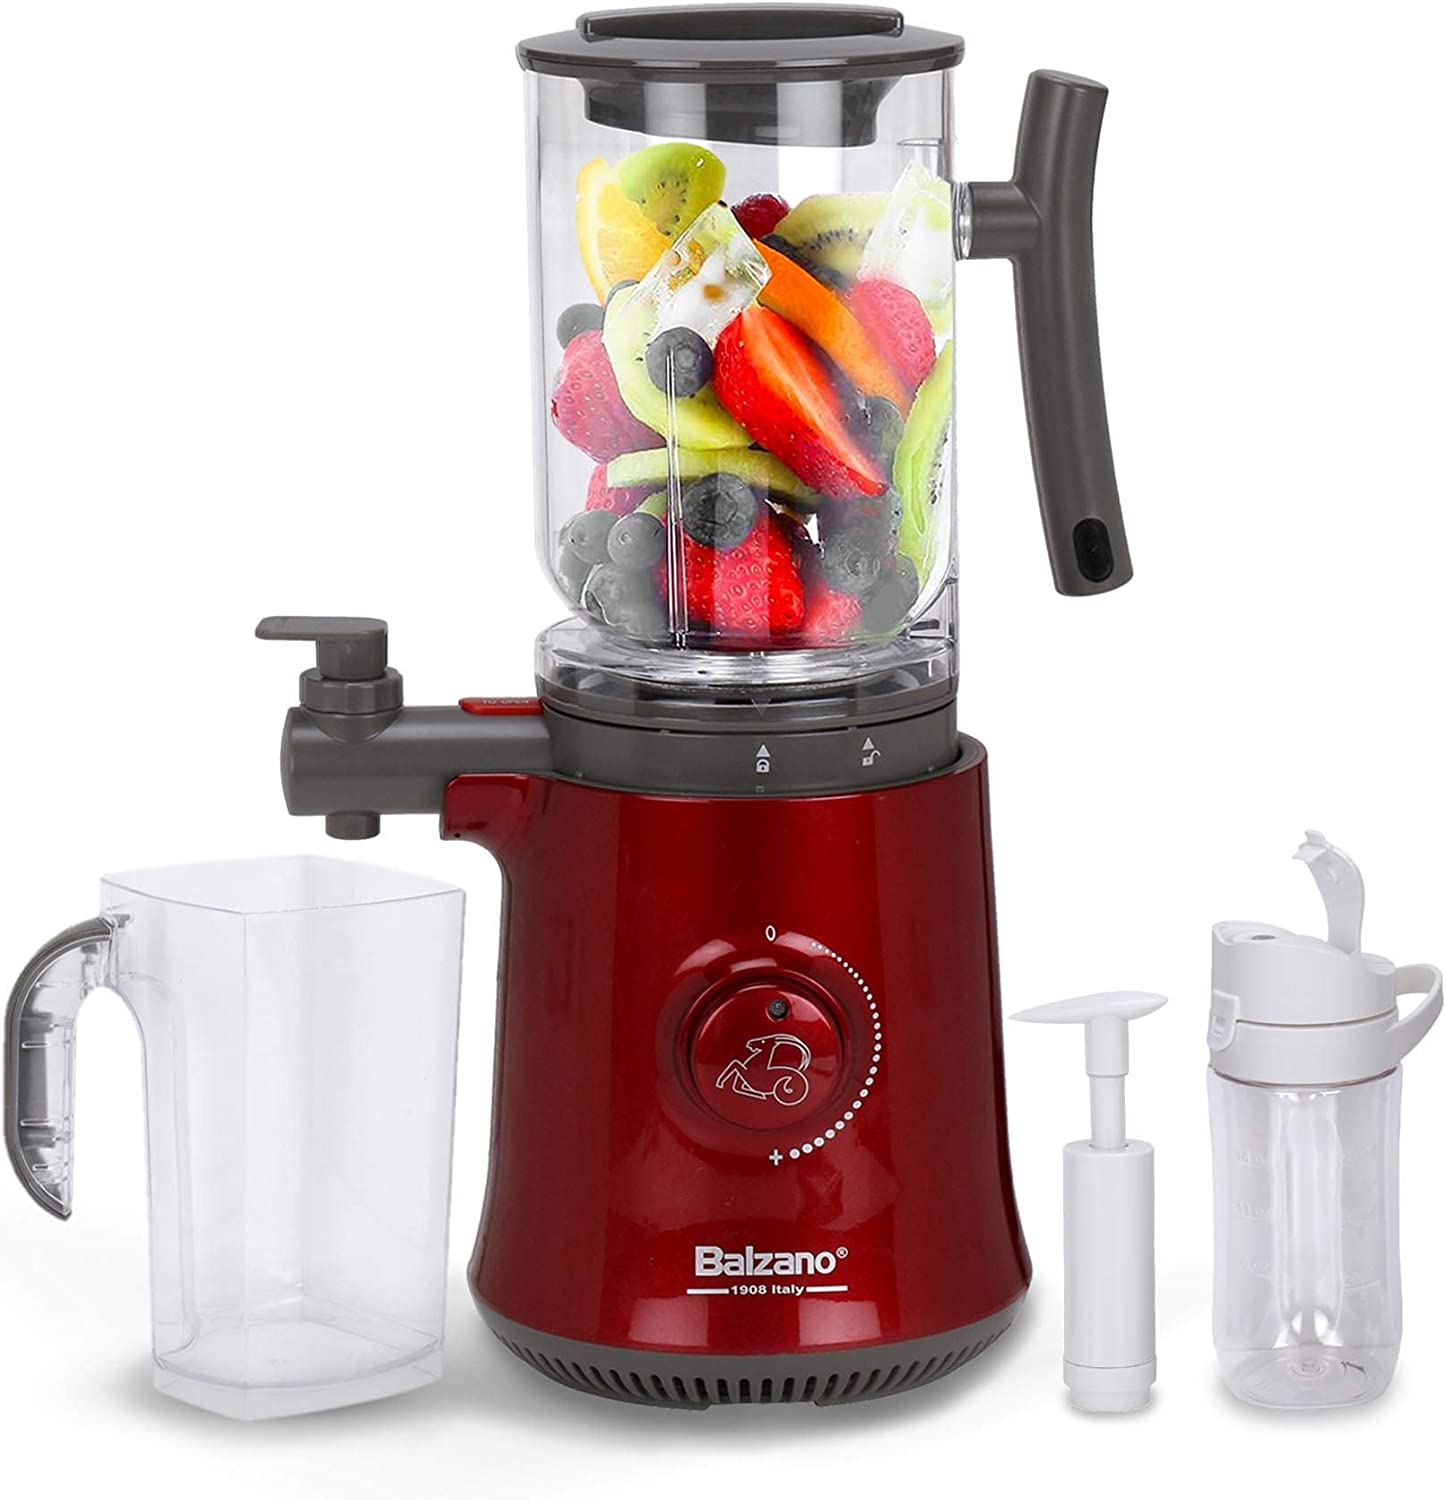 Balzano Yoga Blender/Smoothie Maker/Juicer/Soup Maker with Auto Seed Saperation and Immunity Booster - Metalic Red, Compact